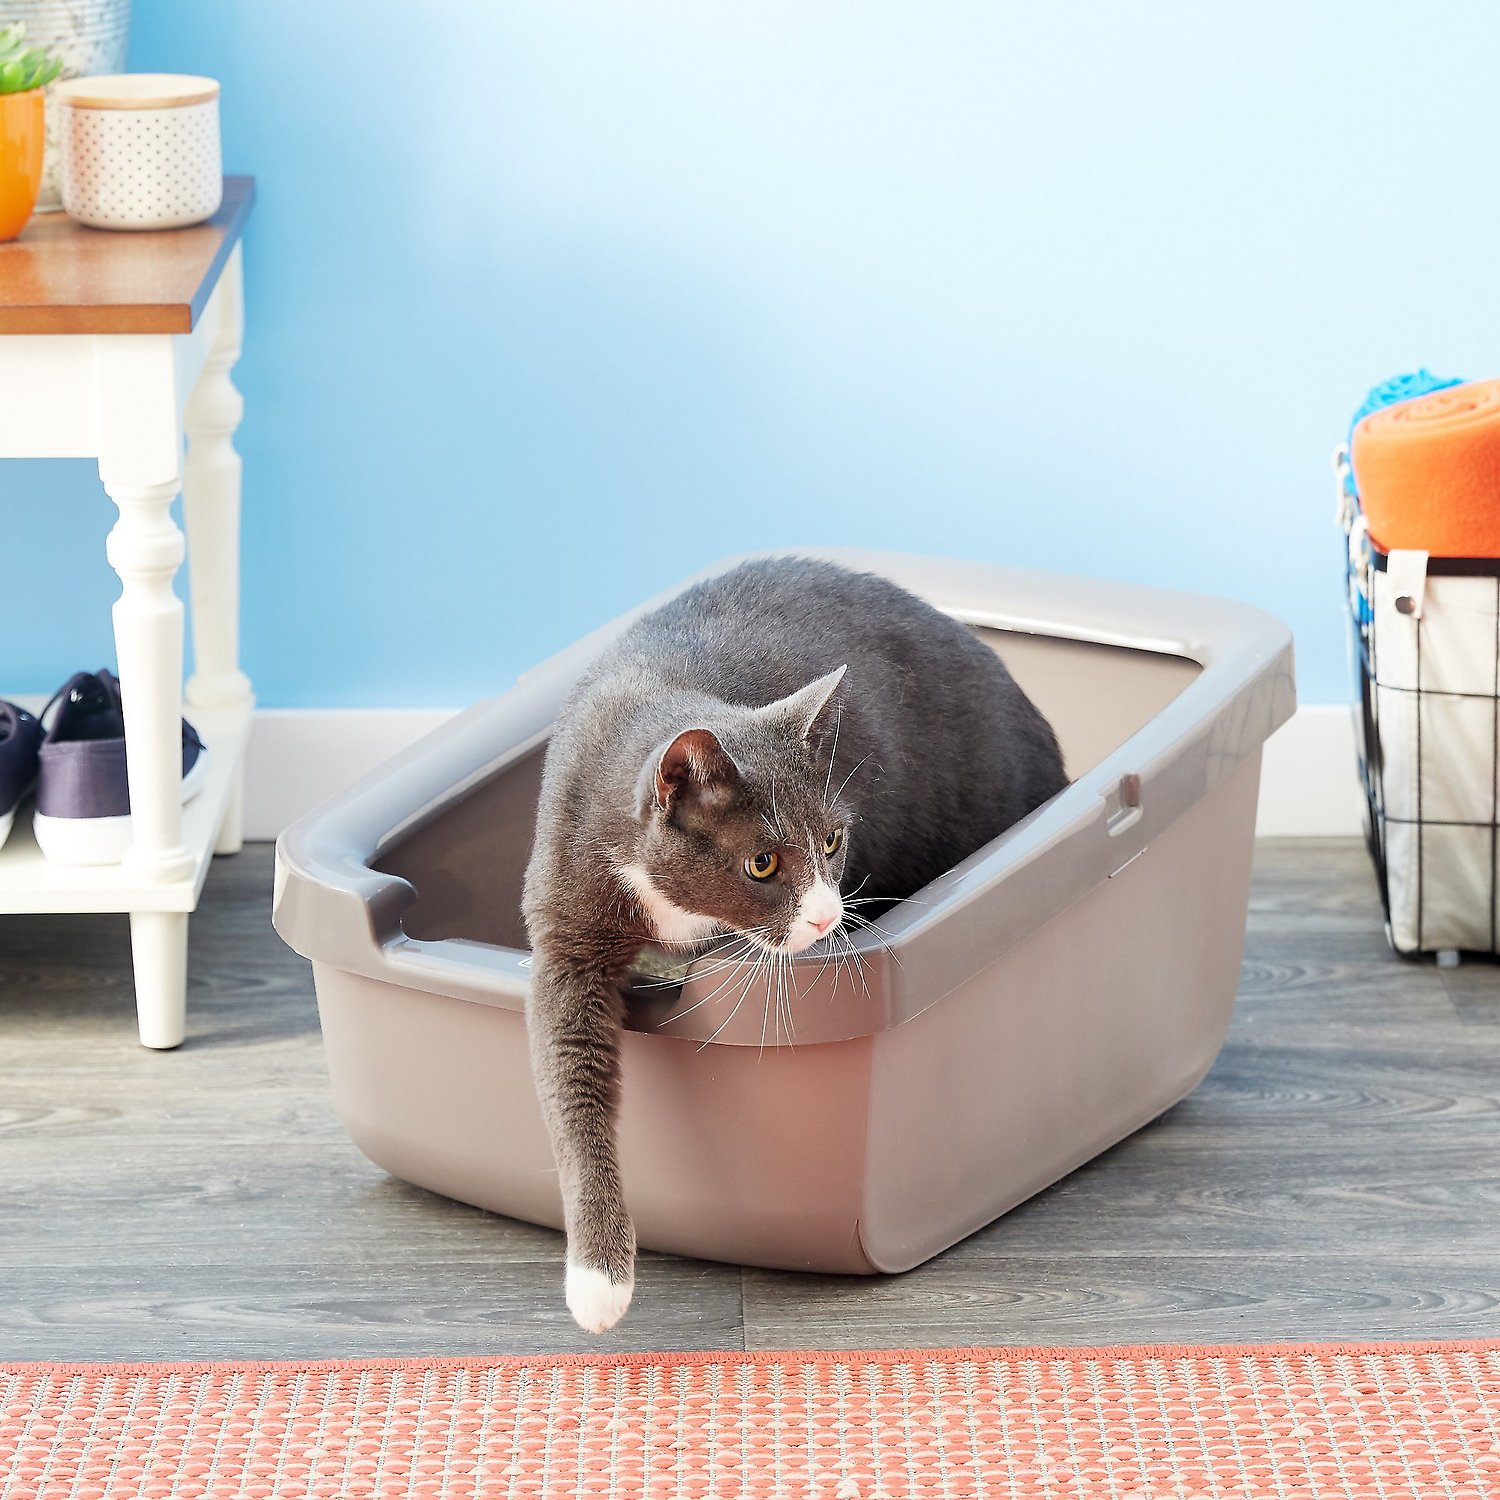 cat litter u0026 accessories litter boxes roll over image to zoom in